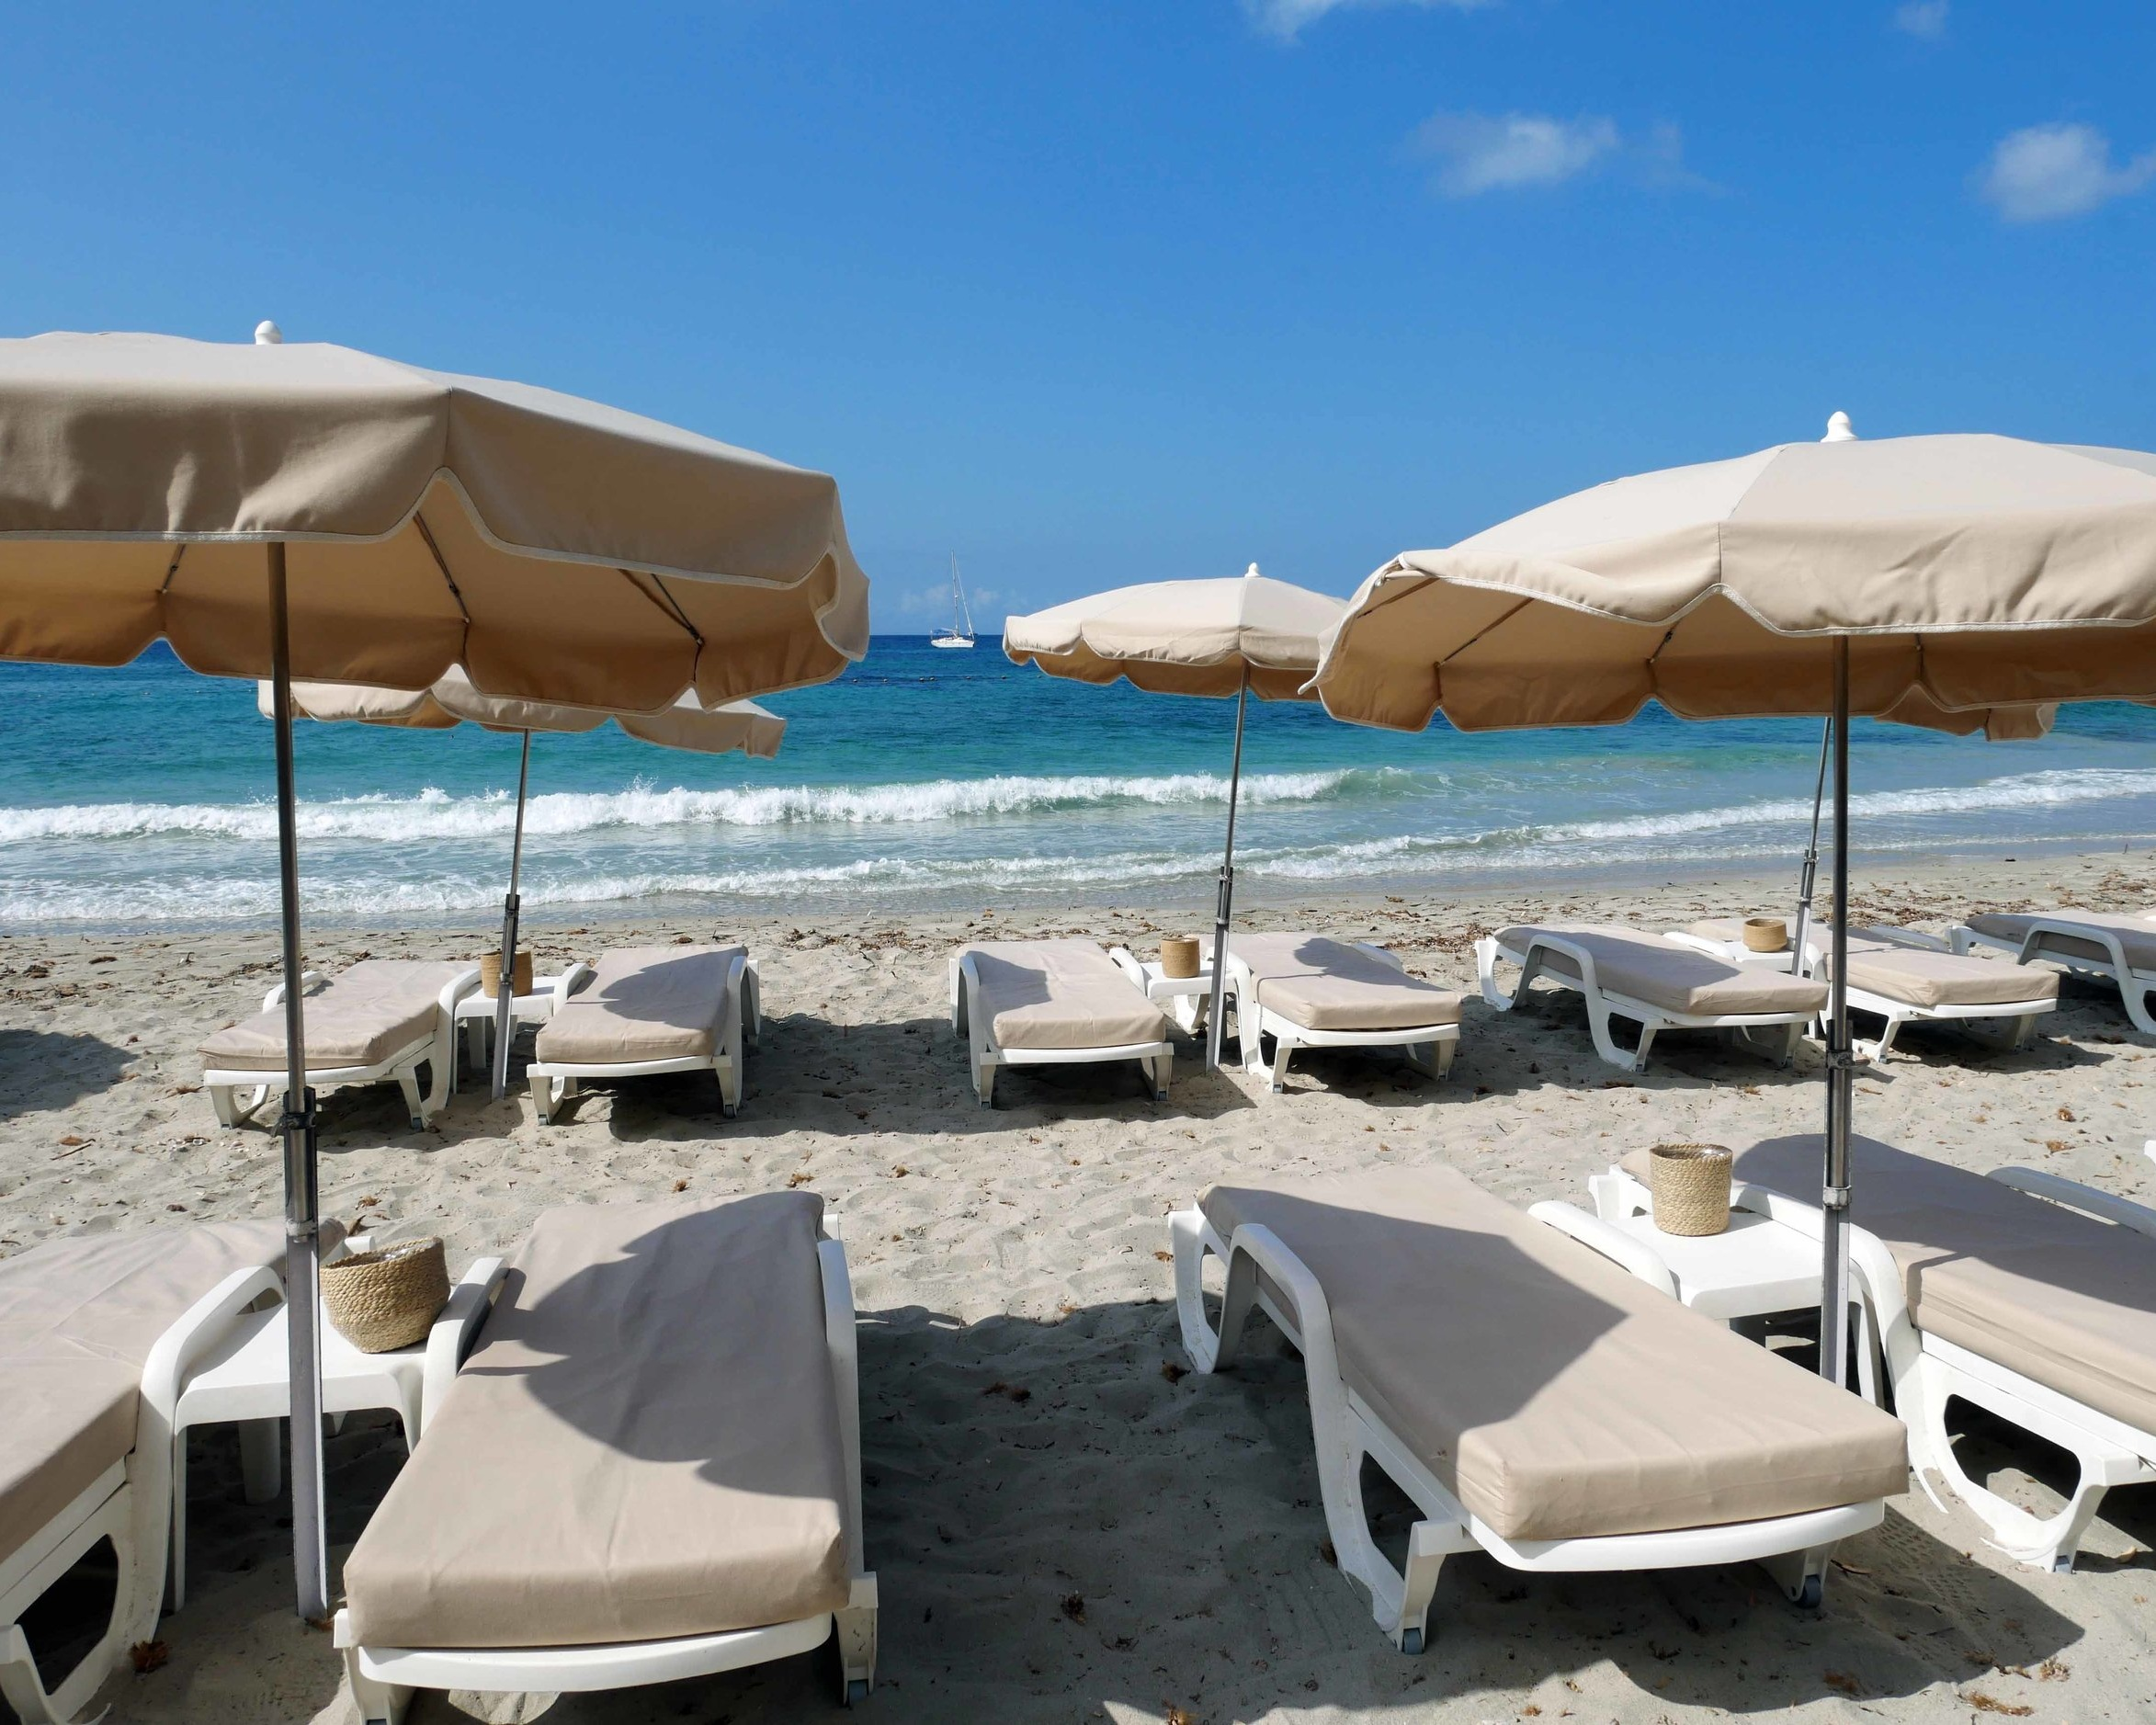 The beach bed I lived in for the day at L'Adriadne Plage